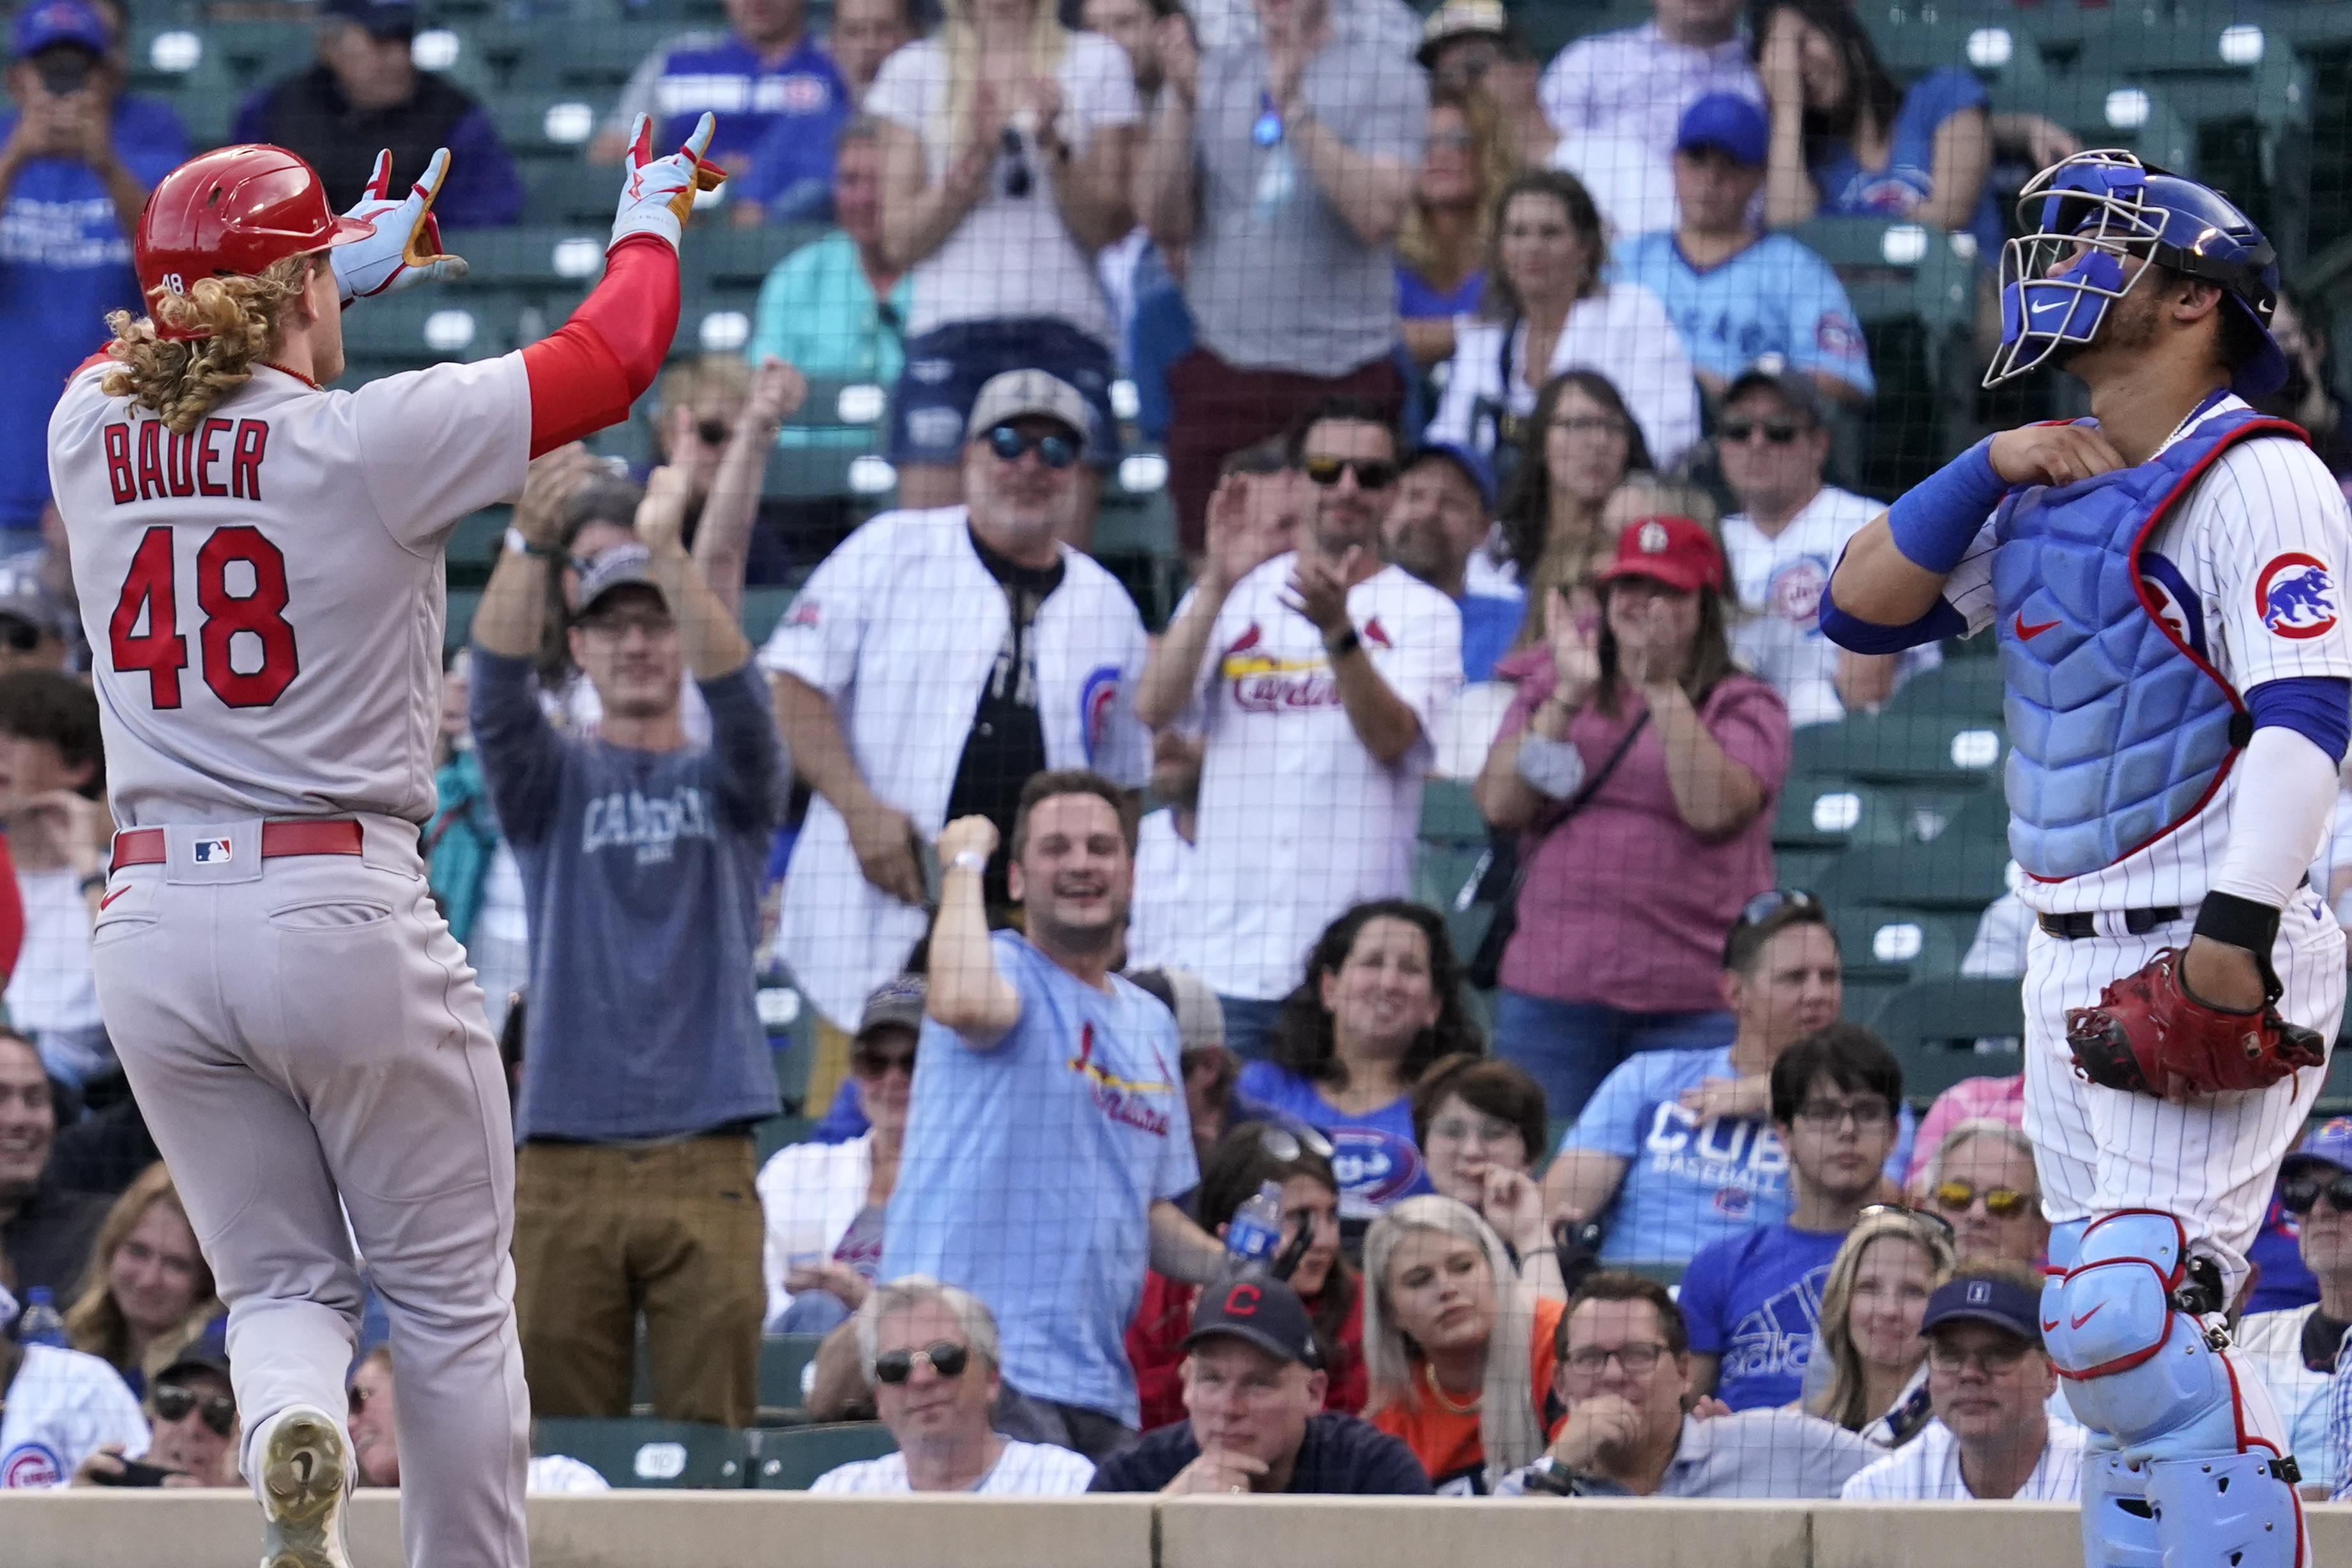 The Cardinals' Harrison Bader, left, celebrates after hitting a solo home run as Cubs catcher Willson Contreras looks on during the eighth inning of Sunday's game.